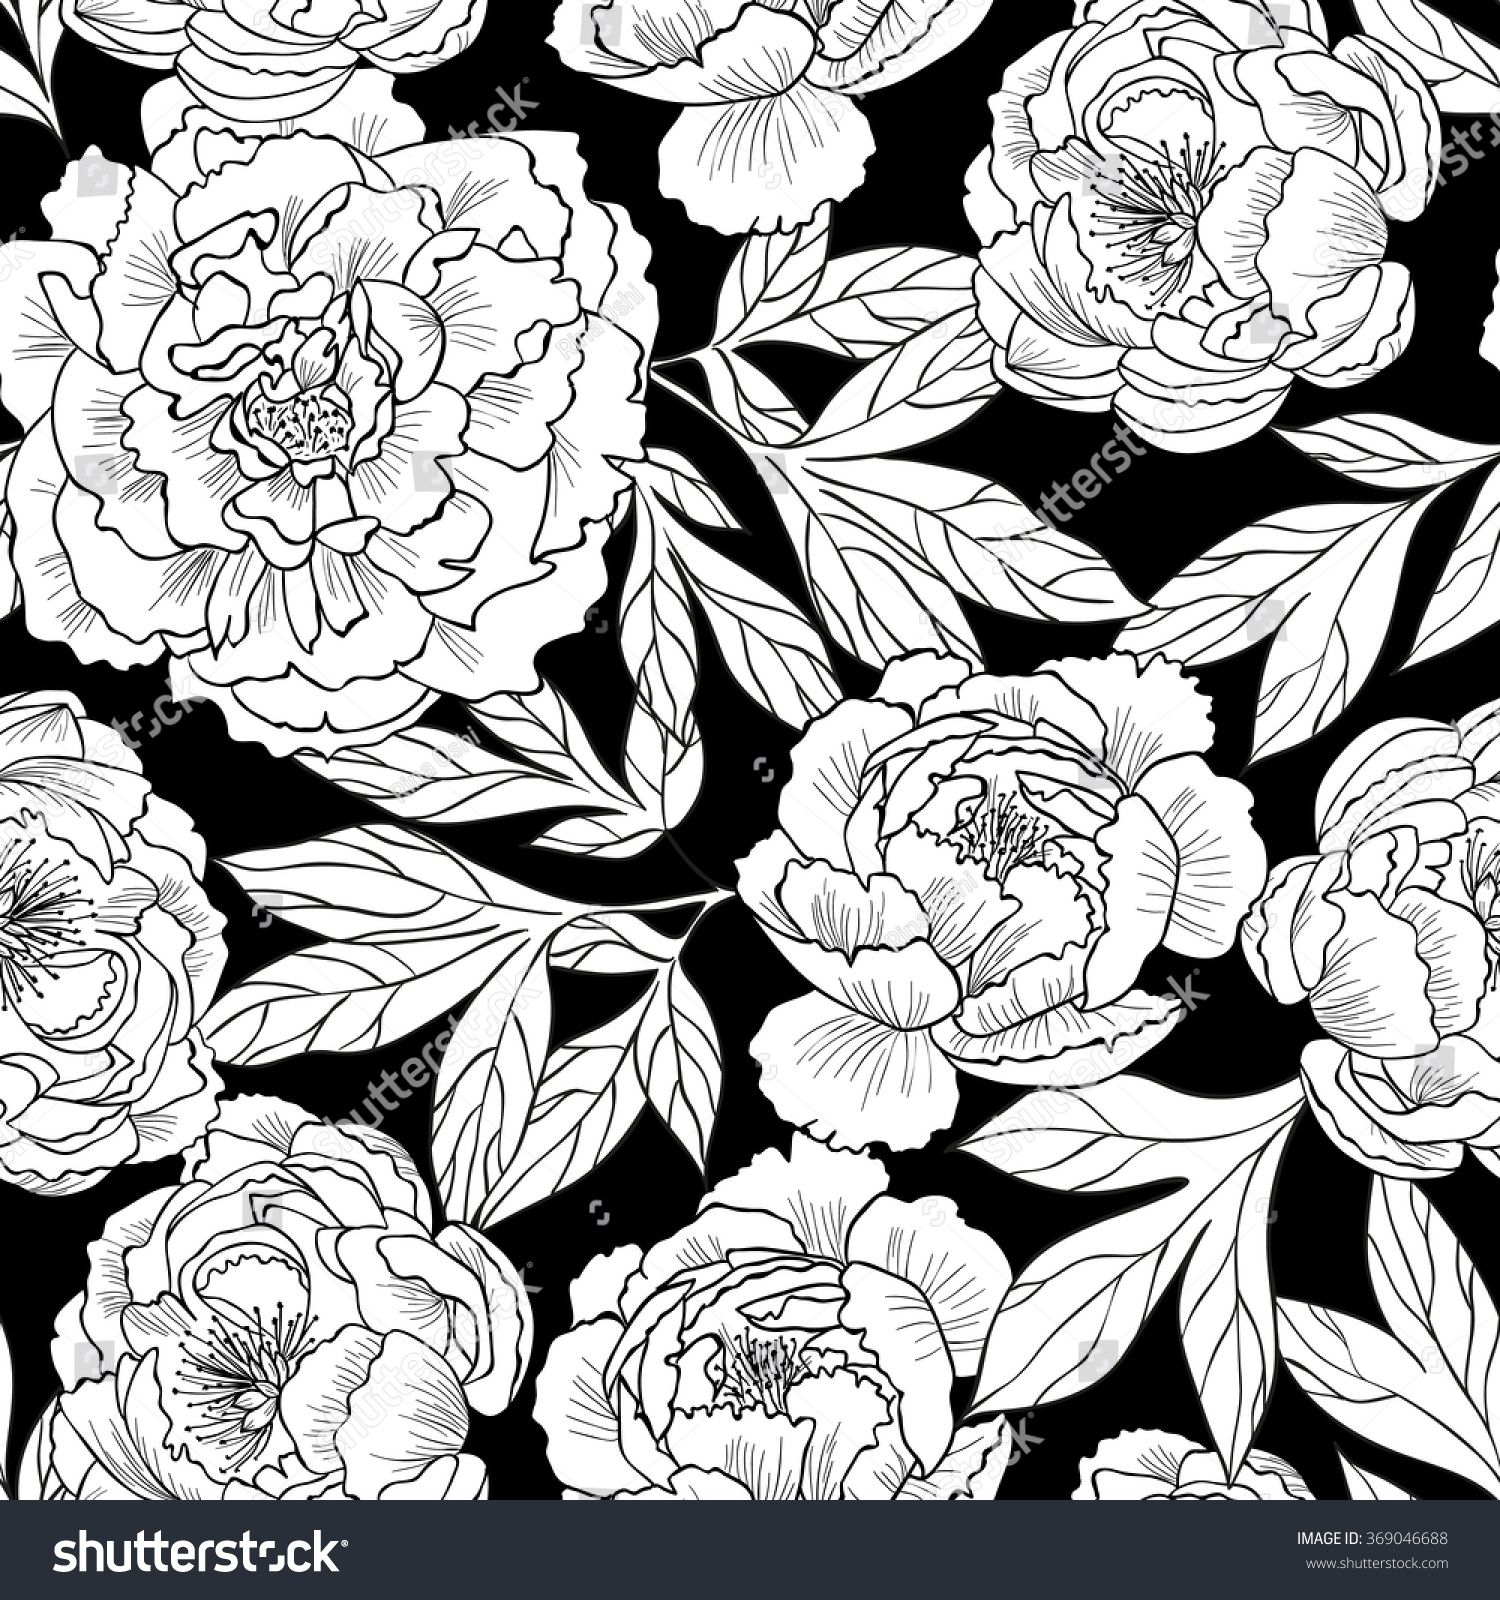 Peony flowers on a black background.Vector seamless